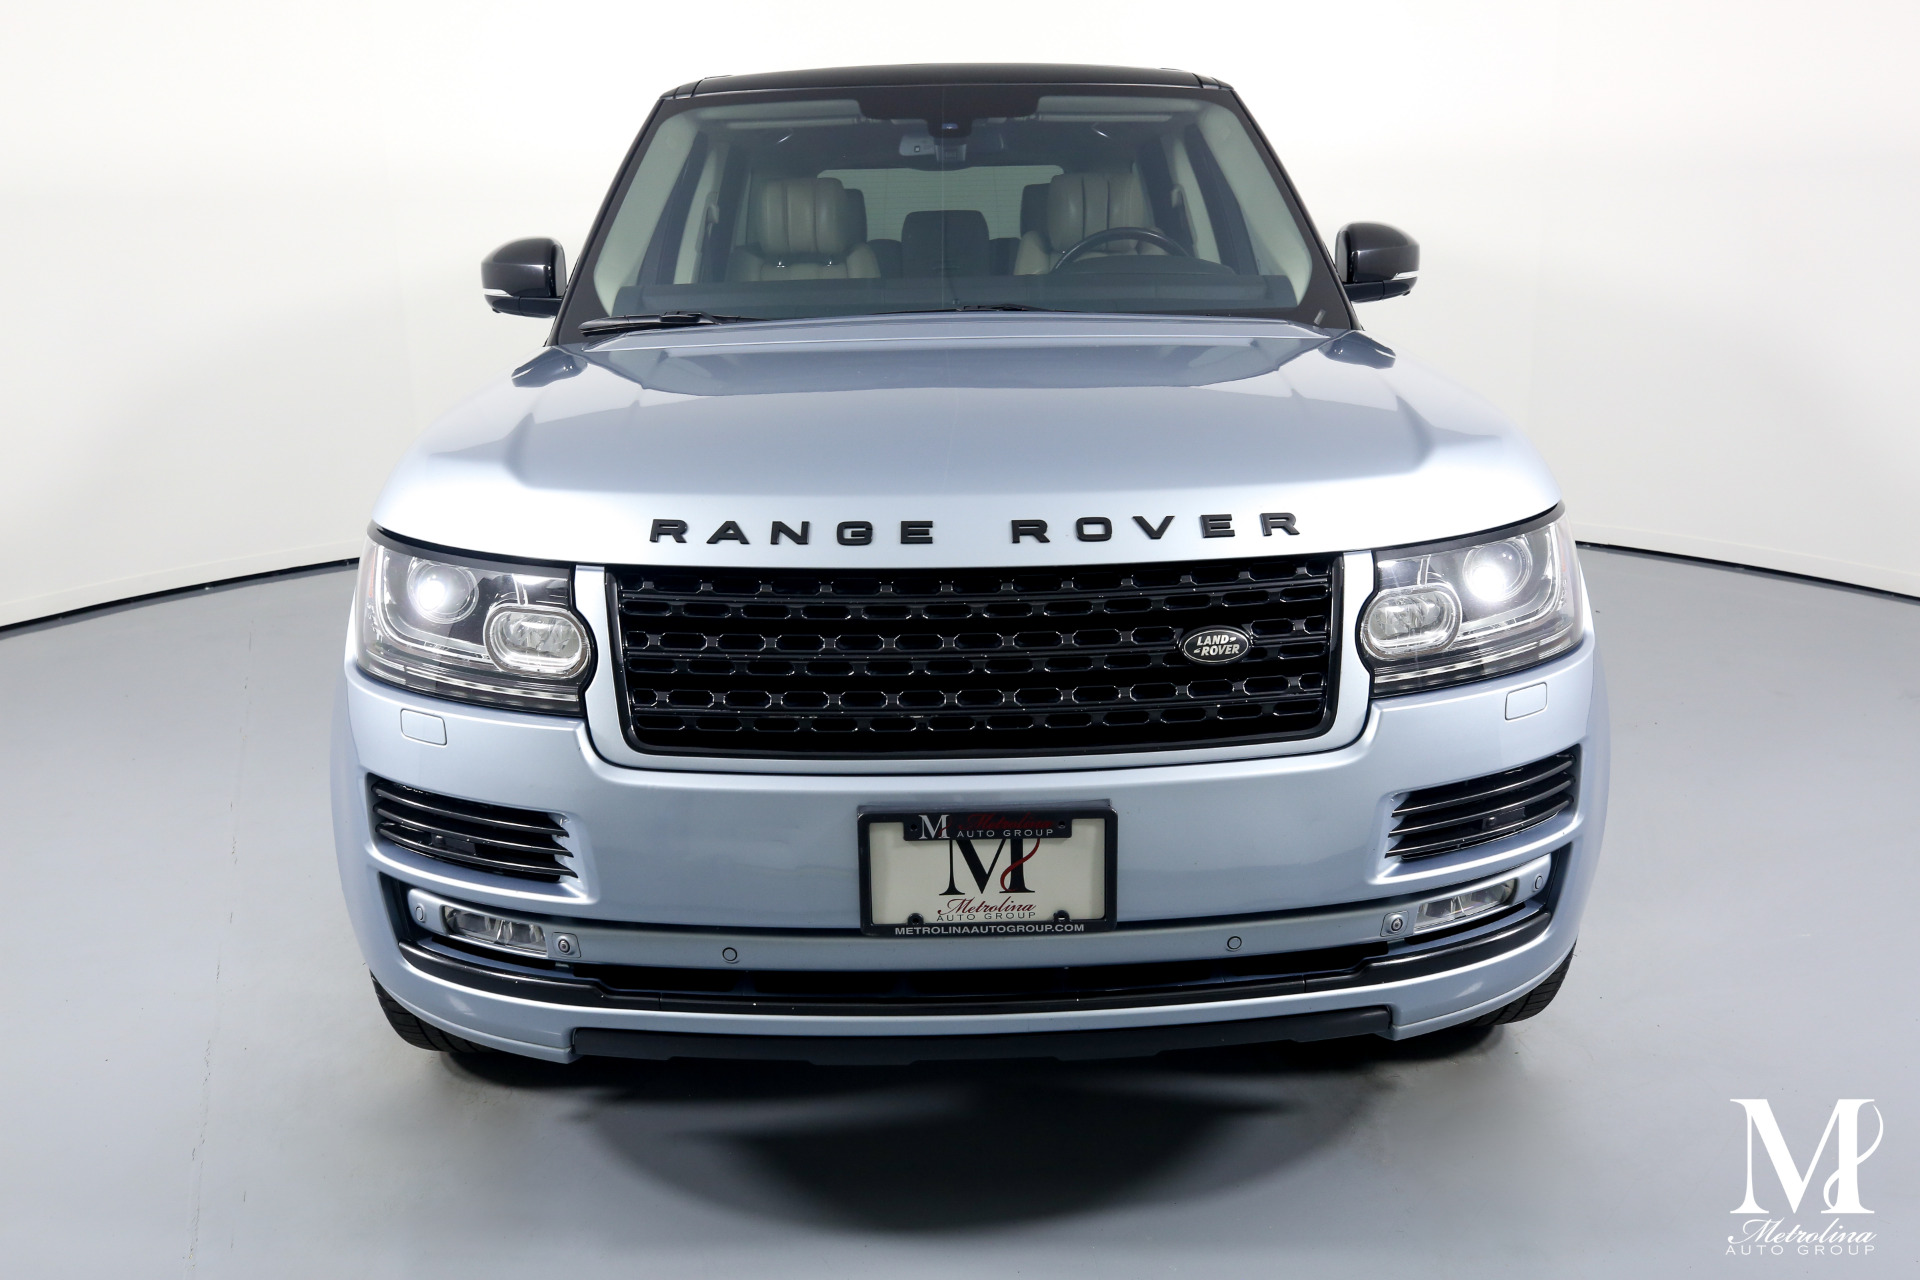 Used 2014 Land Rover Range Rover Autobiography for sale $53,996 at Metrolina Auto Group in Charlotte NC 28217 - 3